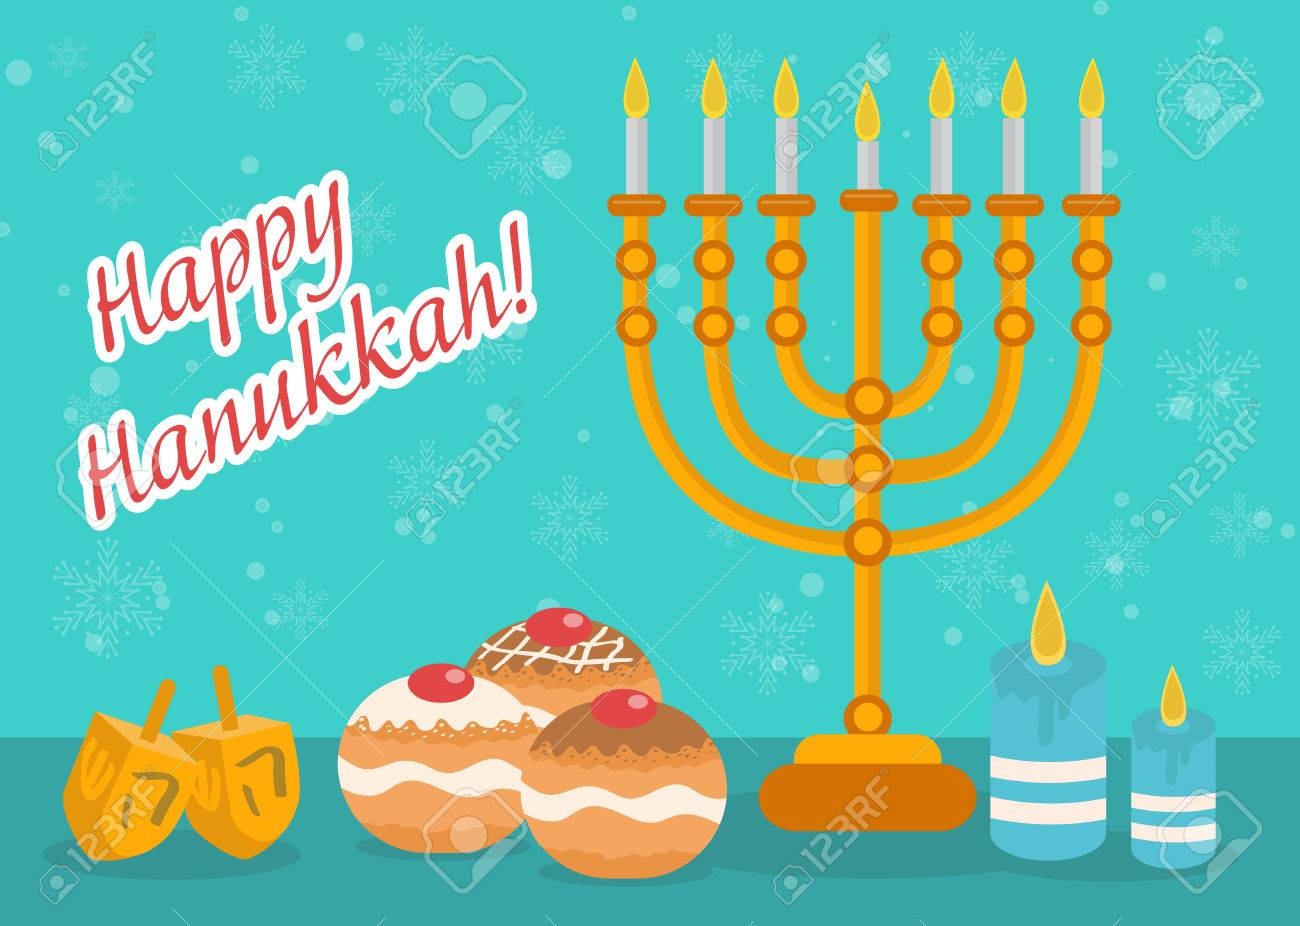 Happy hanukkah greeting card invitation poster hanukkah jewish happy hanukkah greeting card invitation poster hanukkah jewish festival of lights feast m4hsunfo